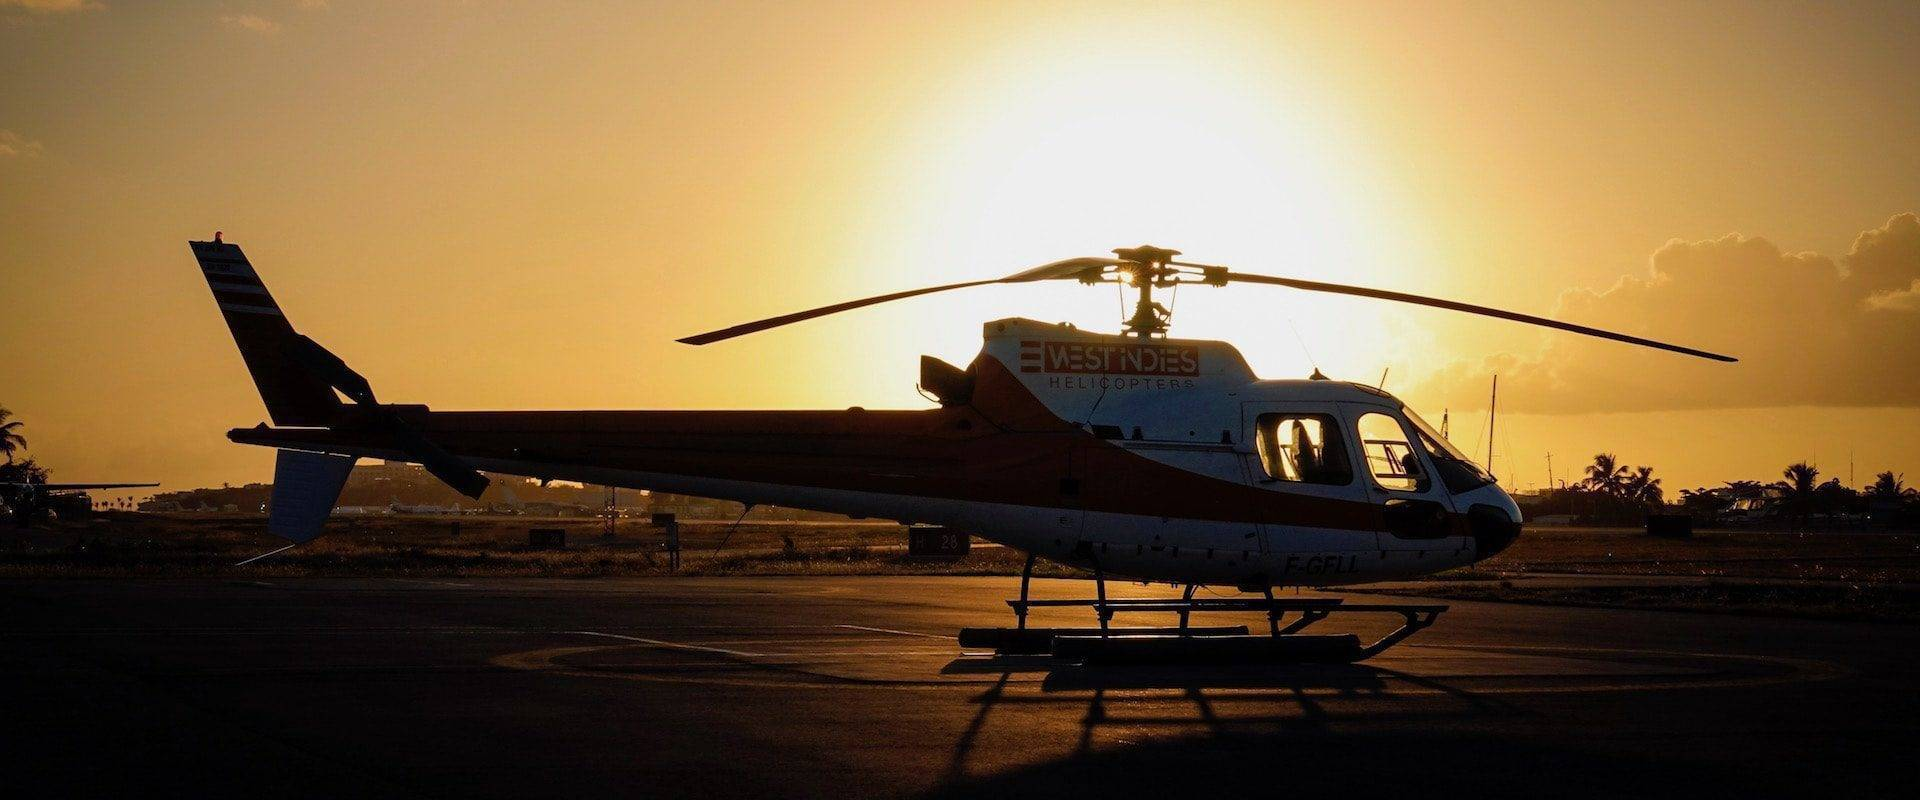 4-West-Indies-Helicoptere-St-Barth